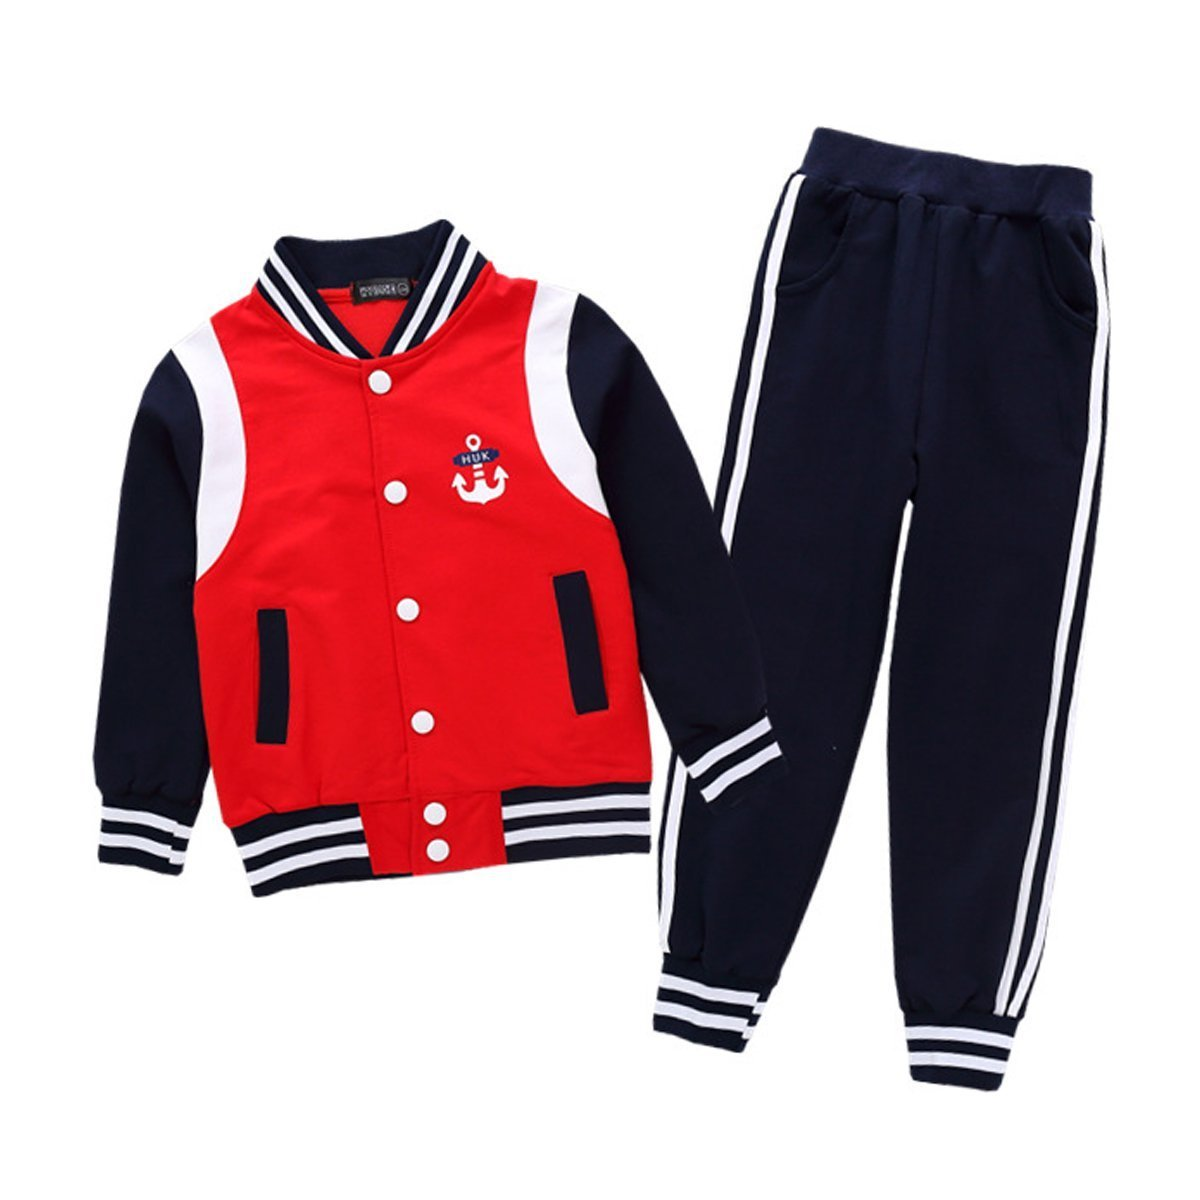 OnlyAngel Boys Baseball Tacksuits Striped Jacket Coat + Elastic Trouser Age 4-13 (Red, 5-6 Years) by OnlyAngel